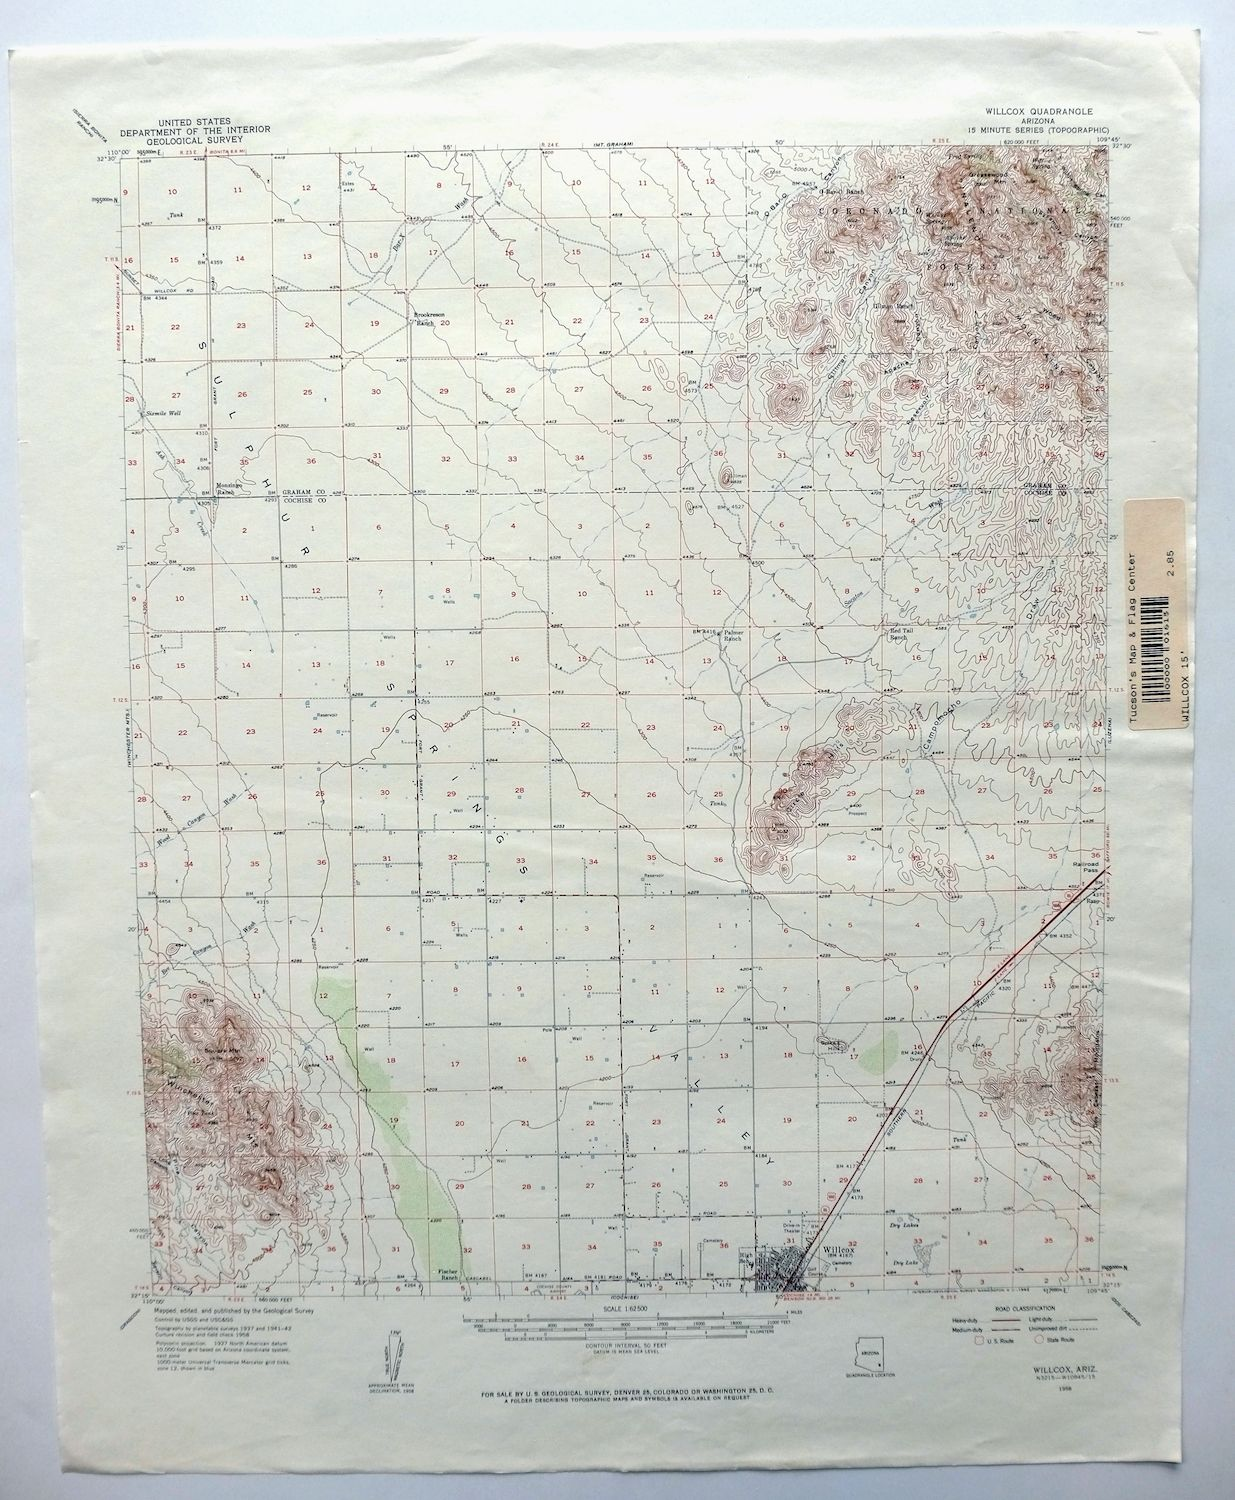 Details about Willcox Arizona Vintage USGS Topo Map 1958 Coronado NF  15-minute Topographical